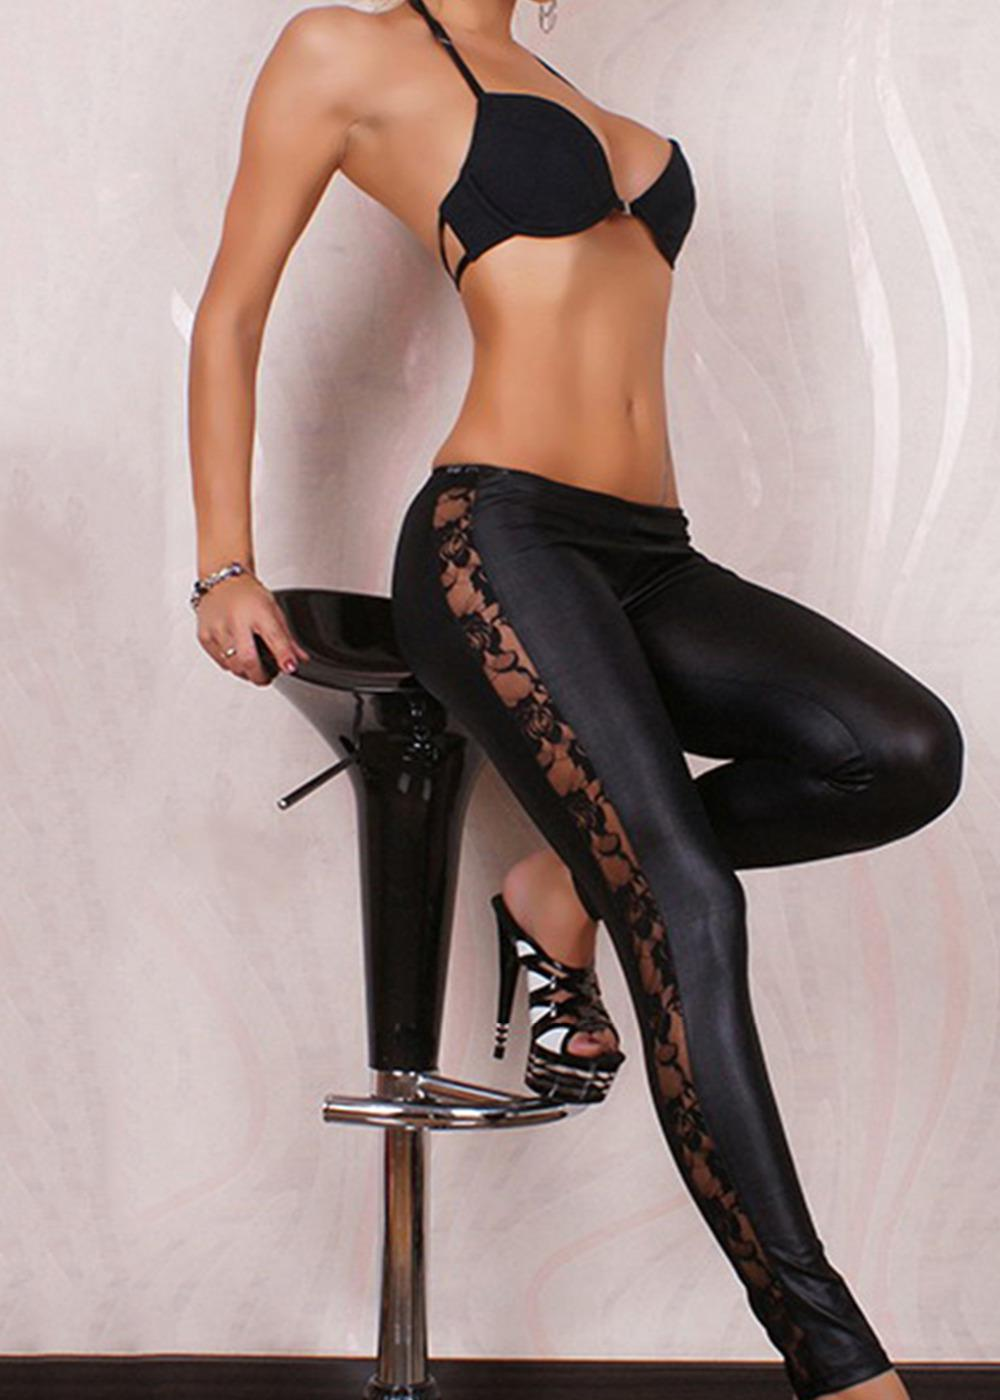 725b586095387e 2019 New Popular Womens Black Leggings Lace Shiny Gothic Leather Wet Look  Pants Jeggings From Brry, $24.43   DHgate.Com